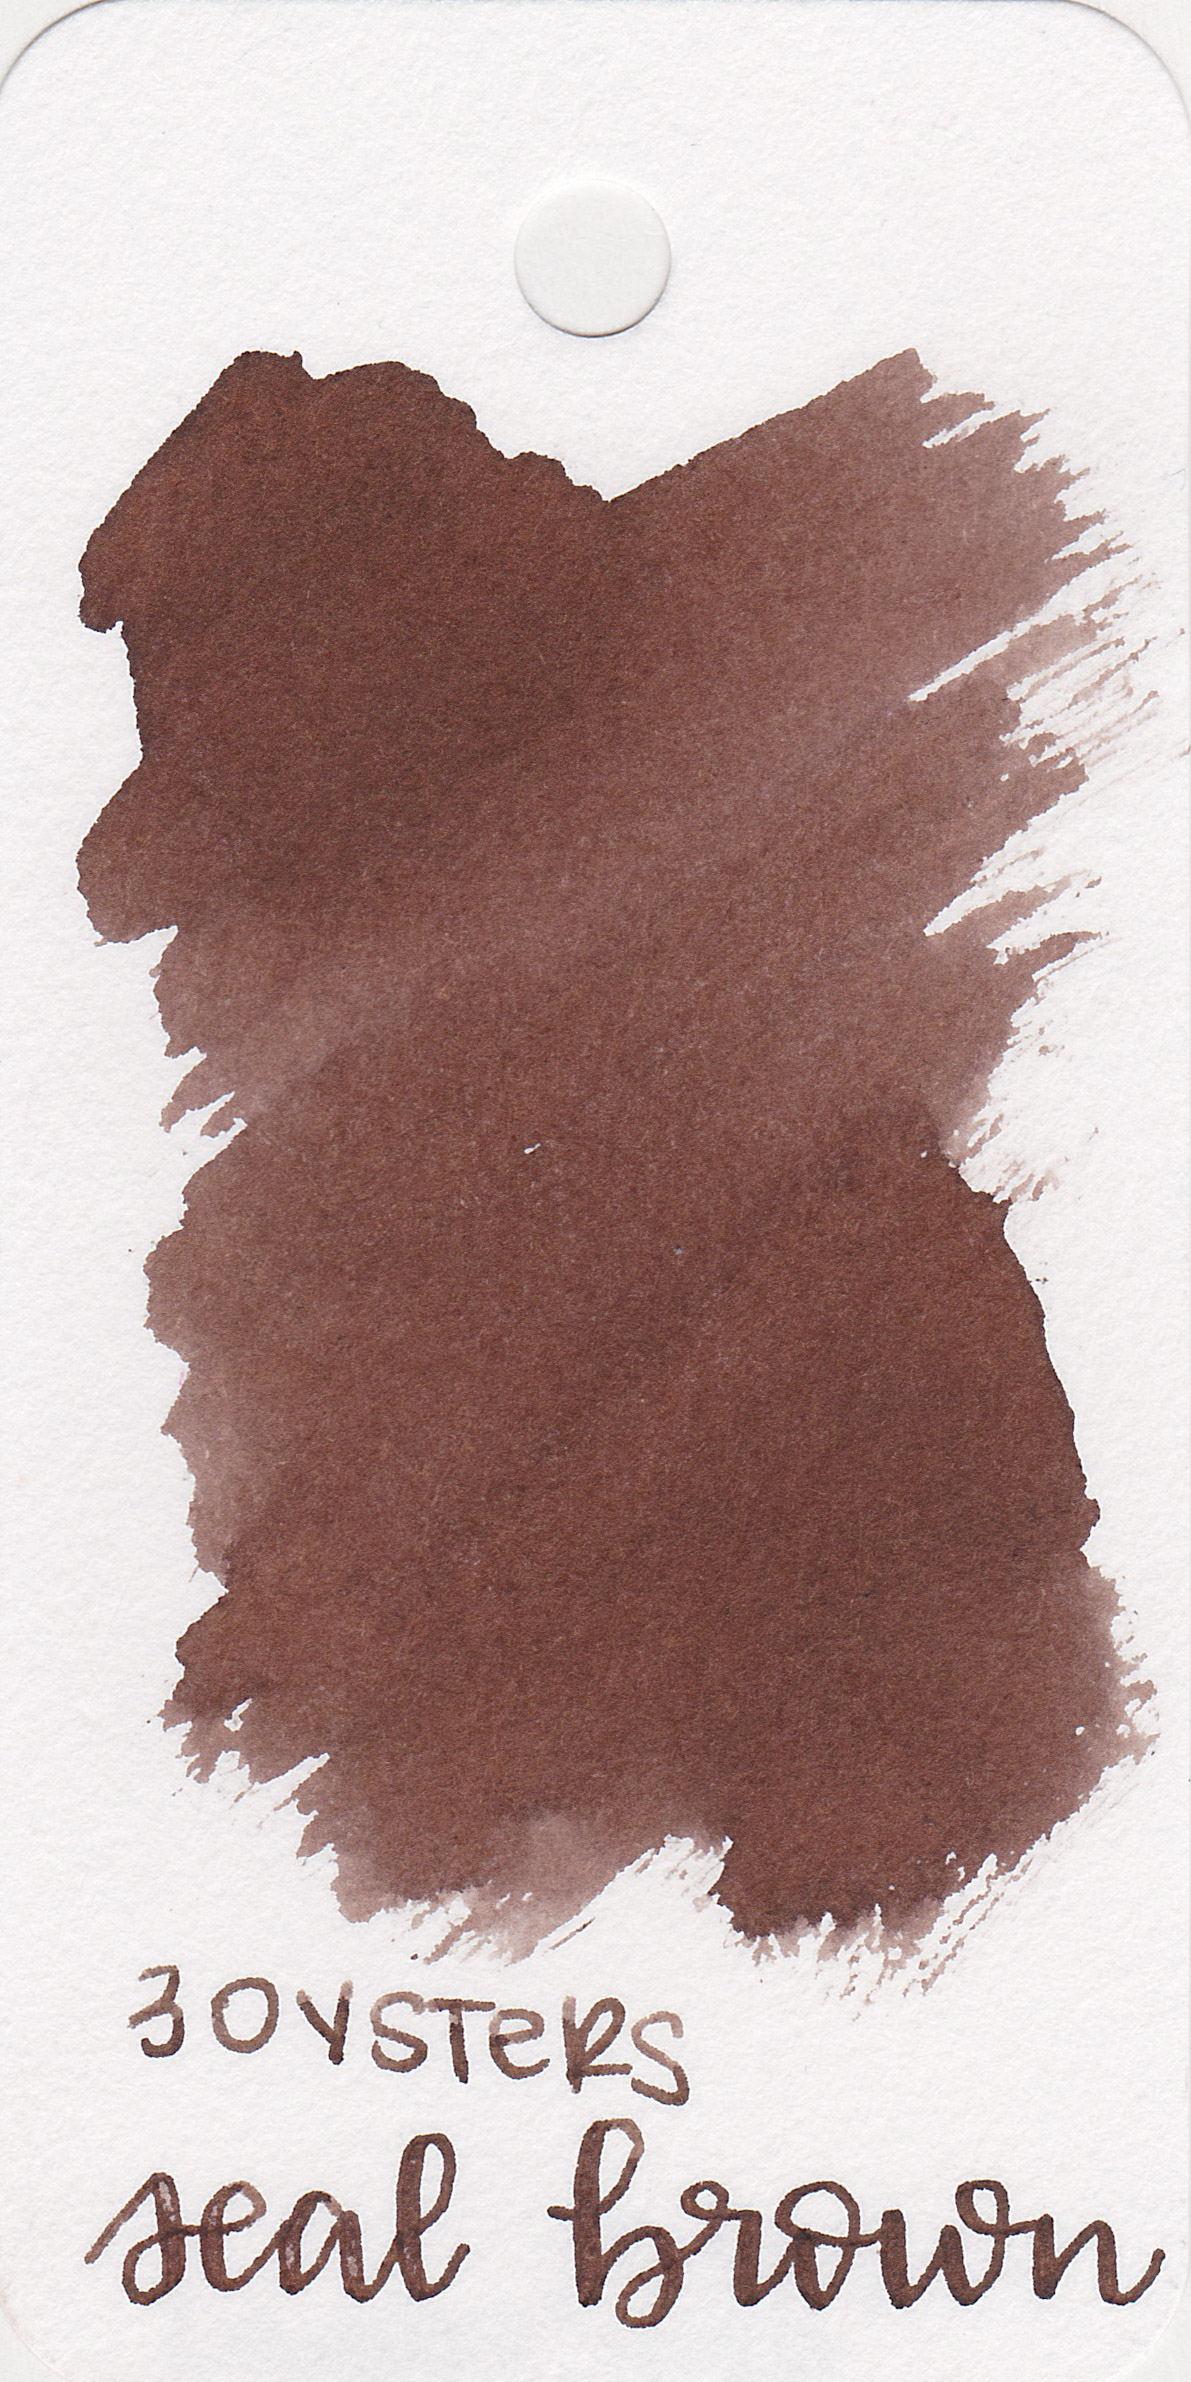 The color: - Seal Brown is a dark brown with some shading.